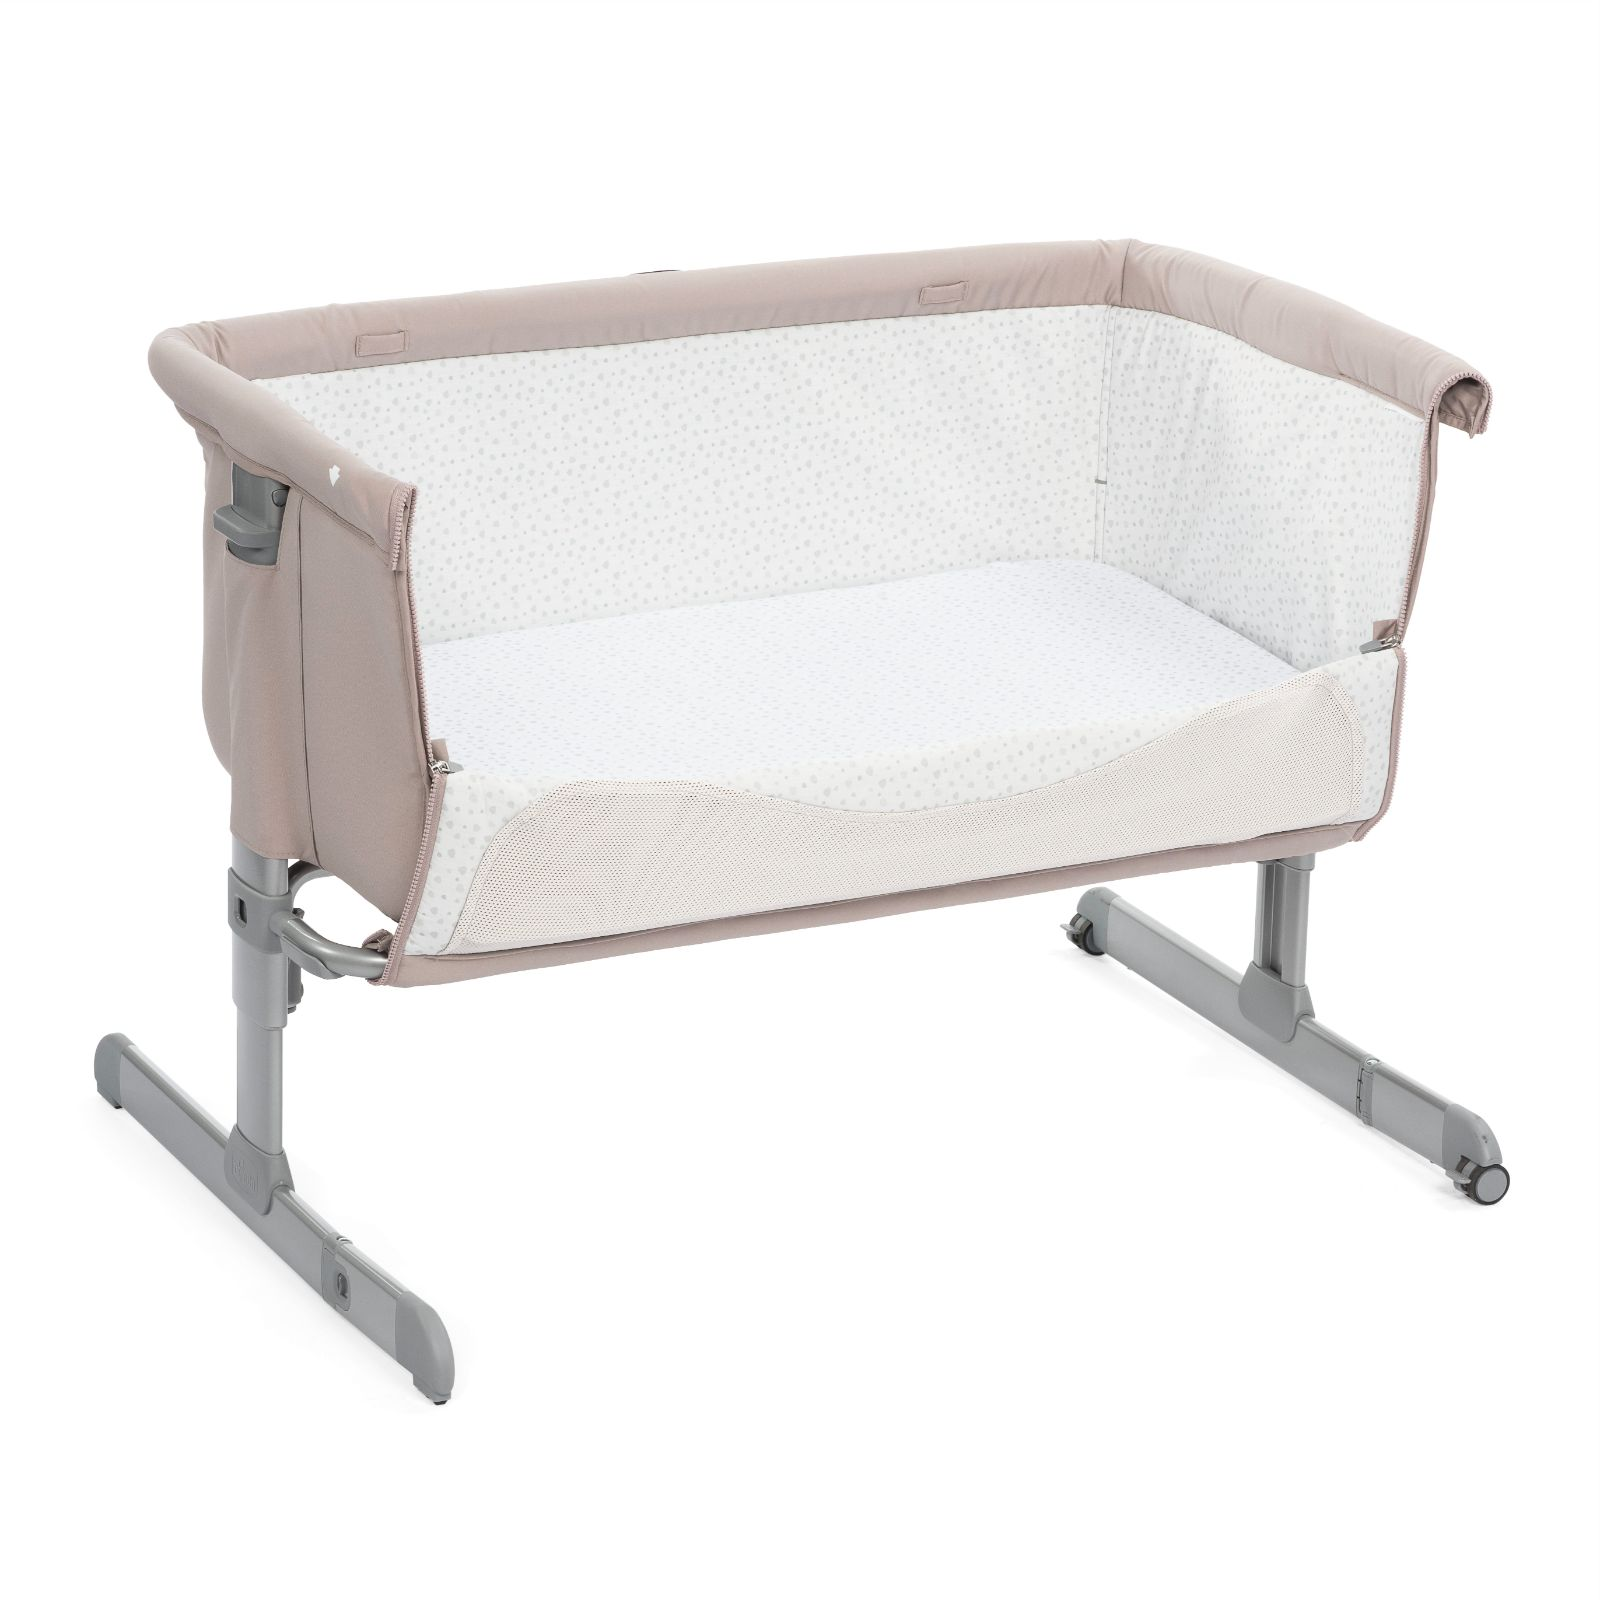 Chicco Next2me Bedside Crib With 2 Fitted Sheets Chick